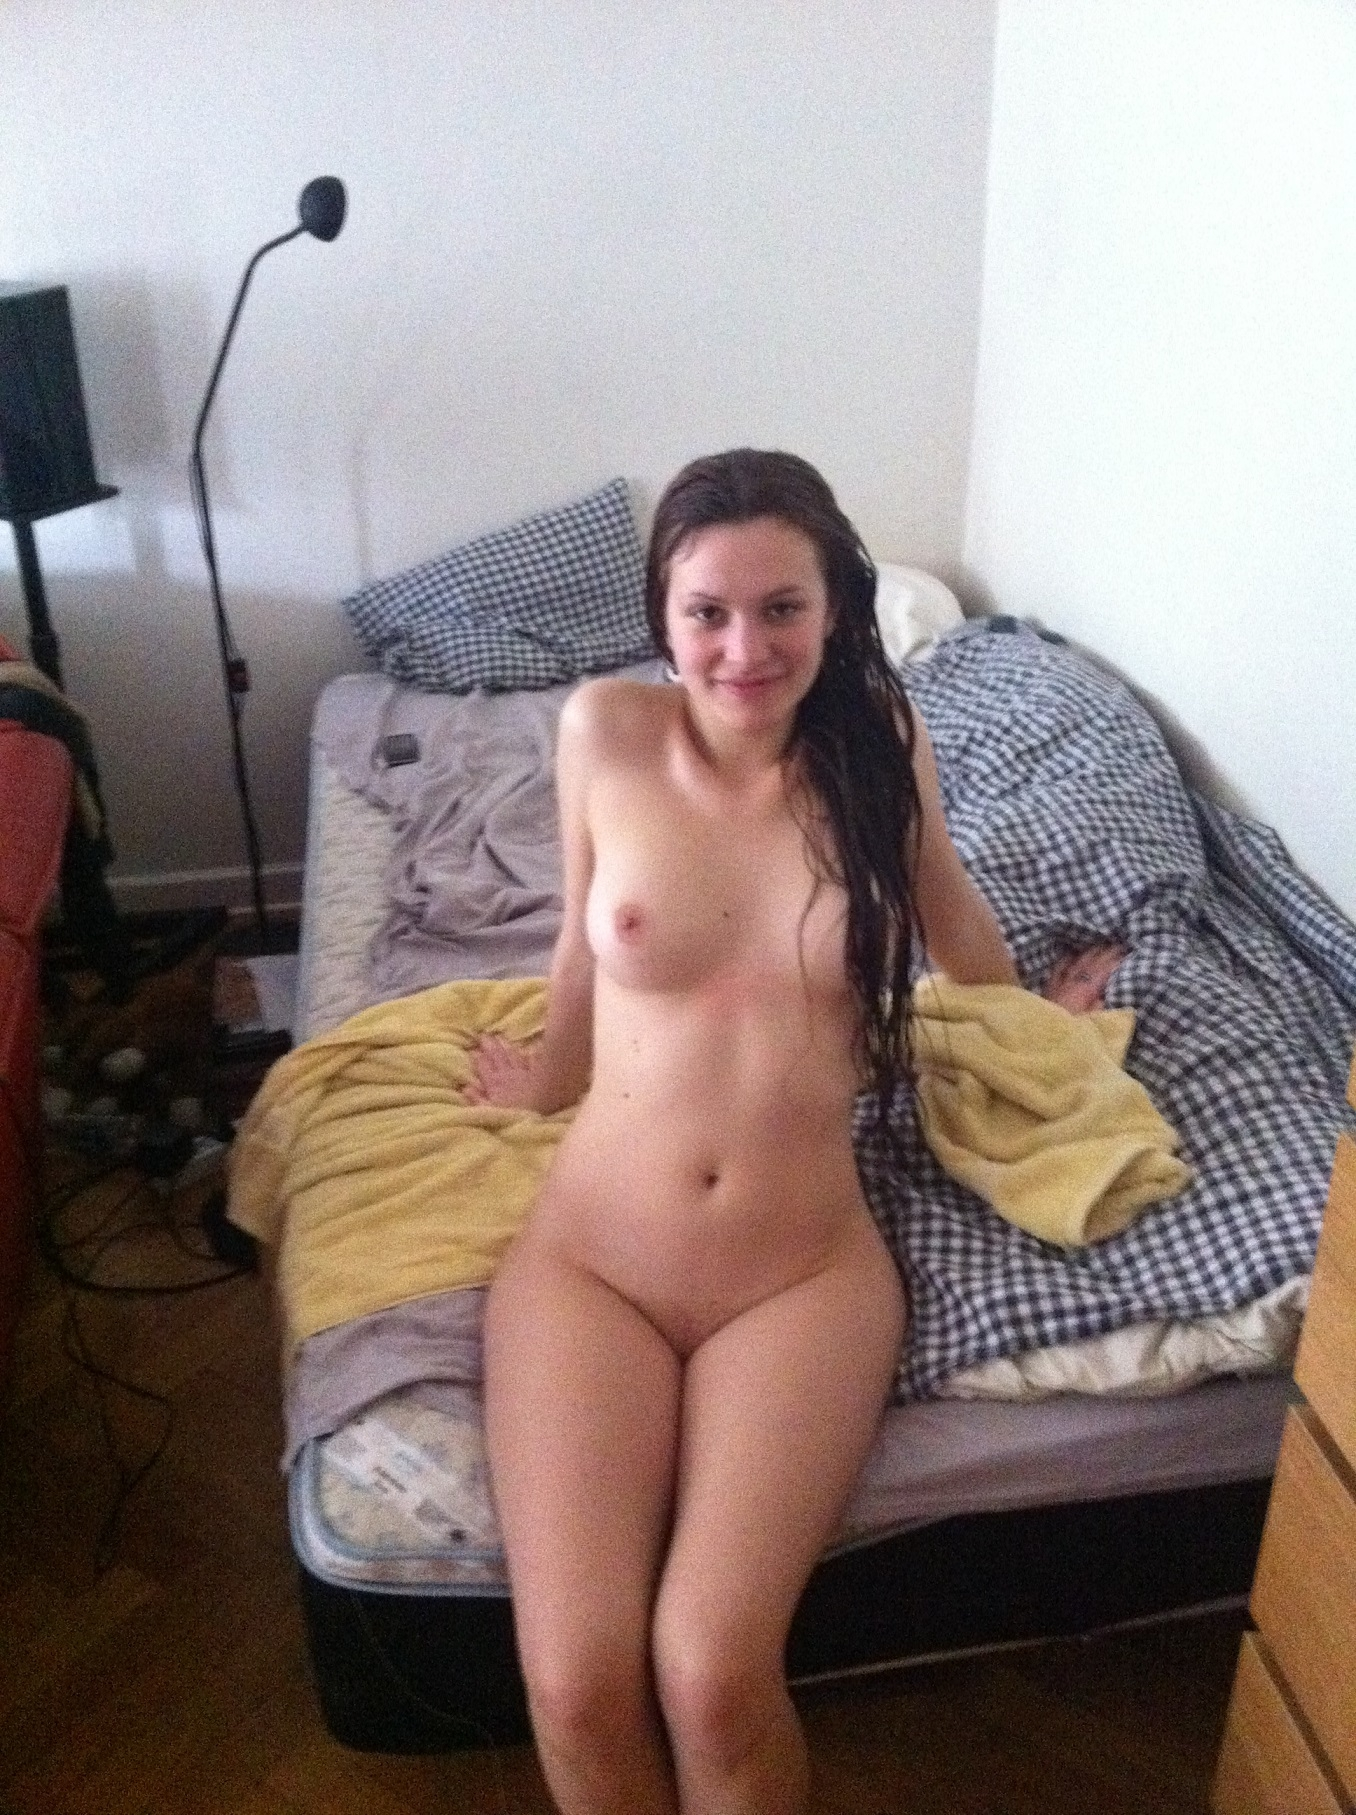 ex-girlfriend-nude-amateurs-girls-private-photo-mix-vol4-57